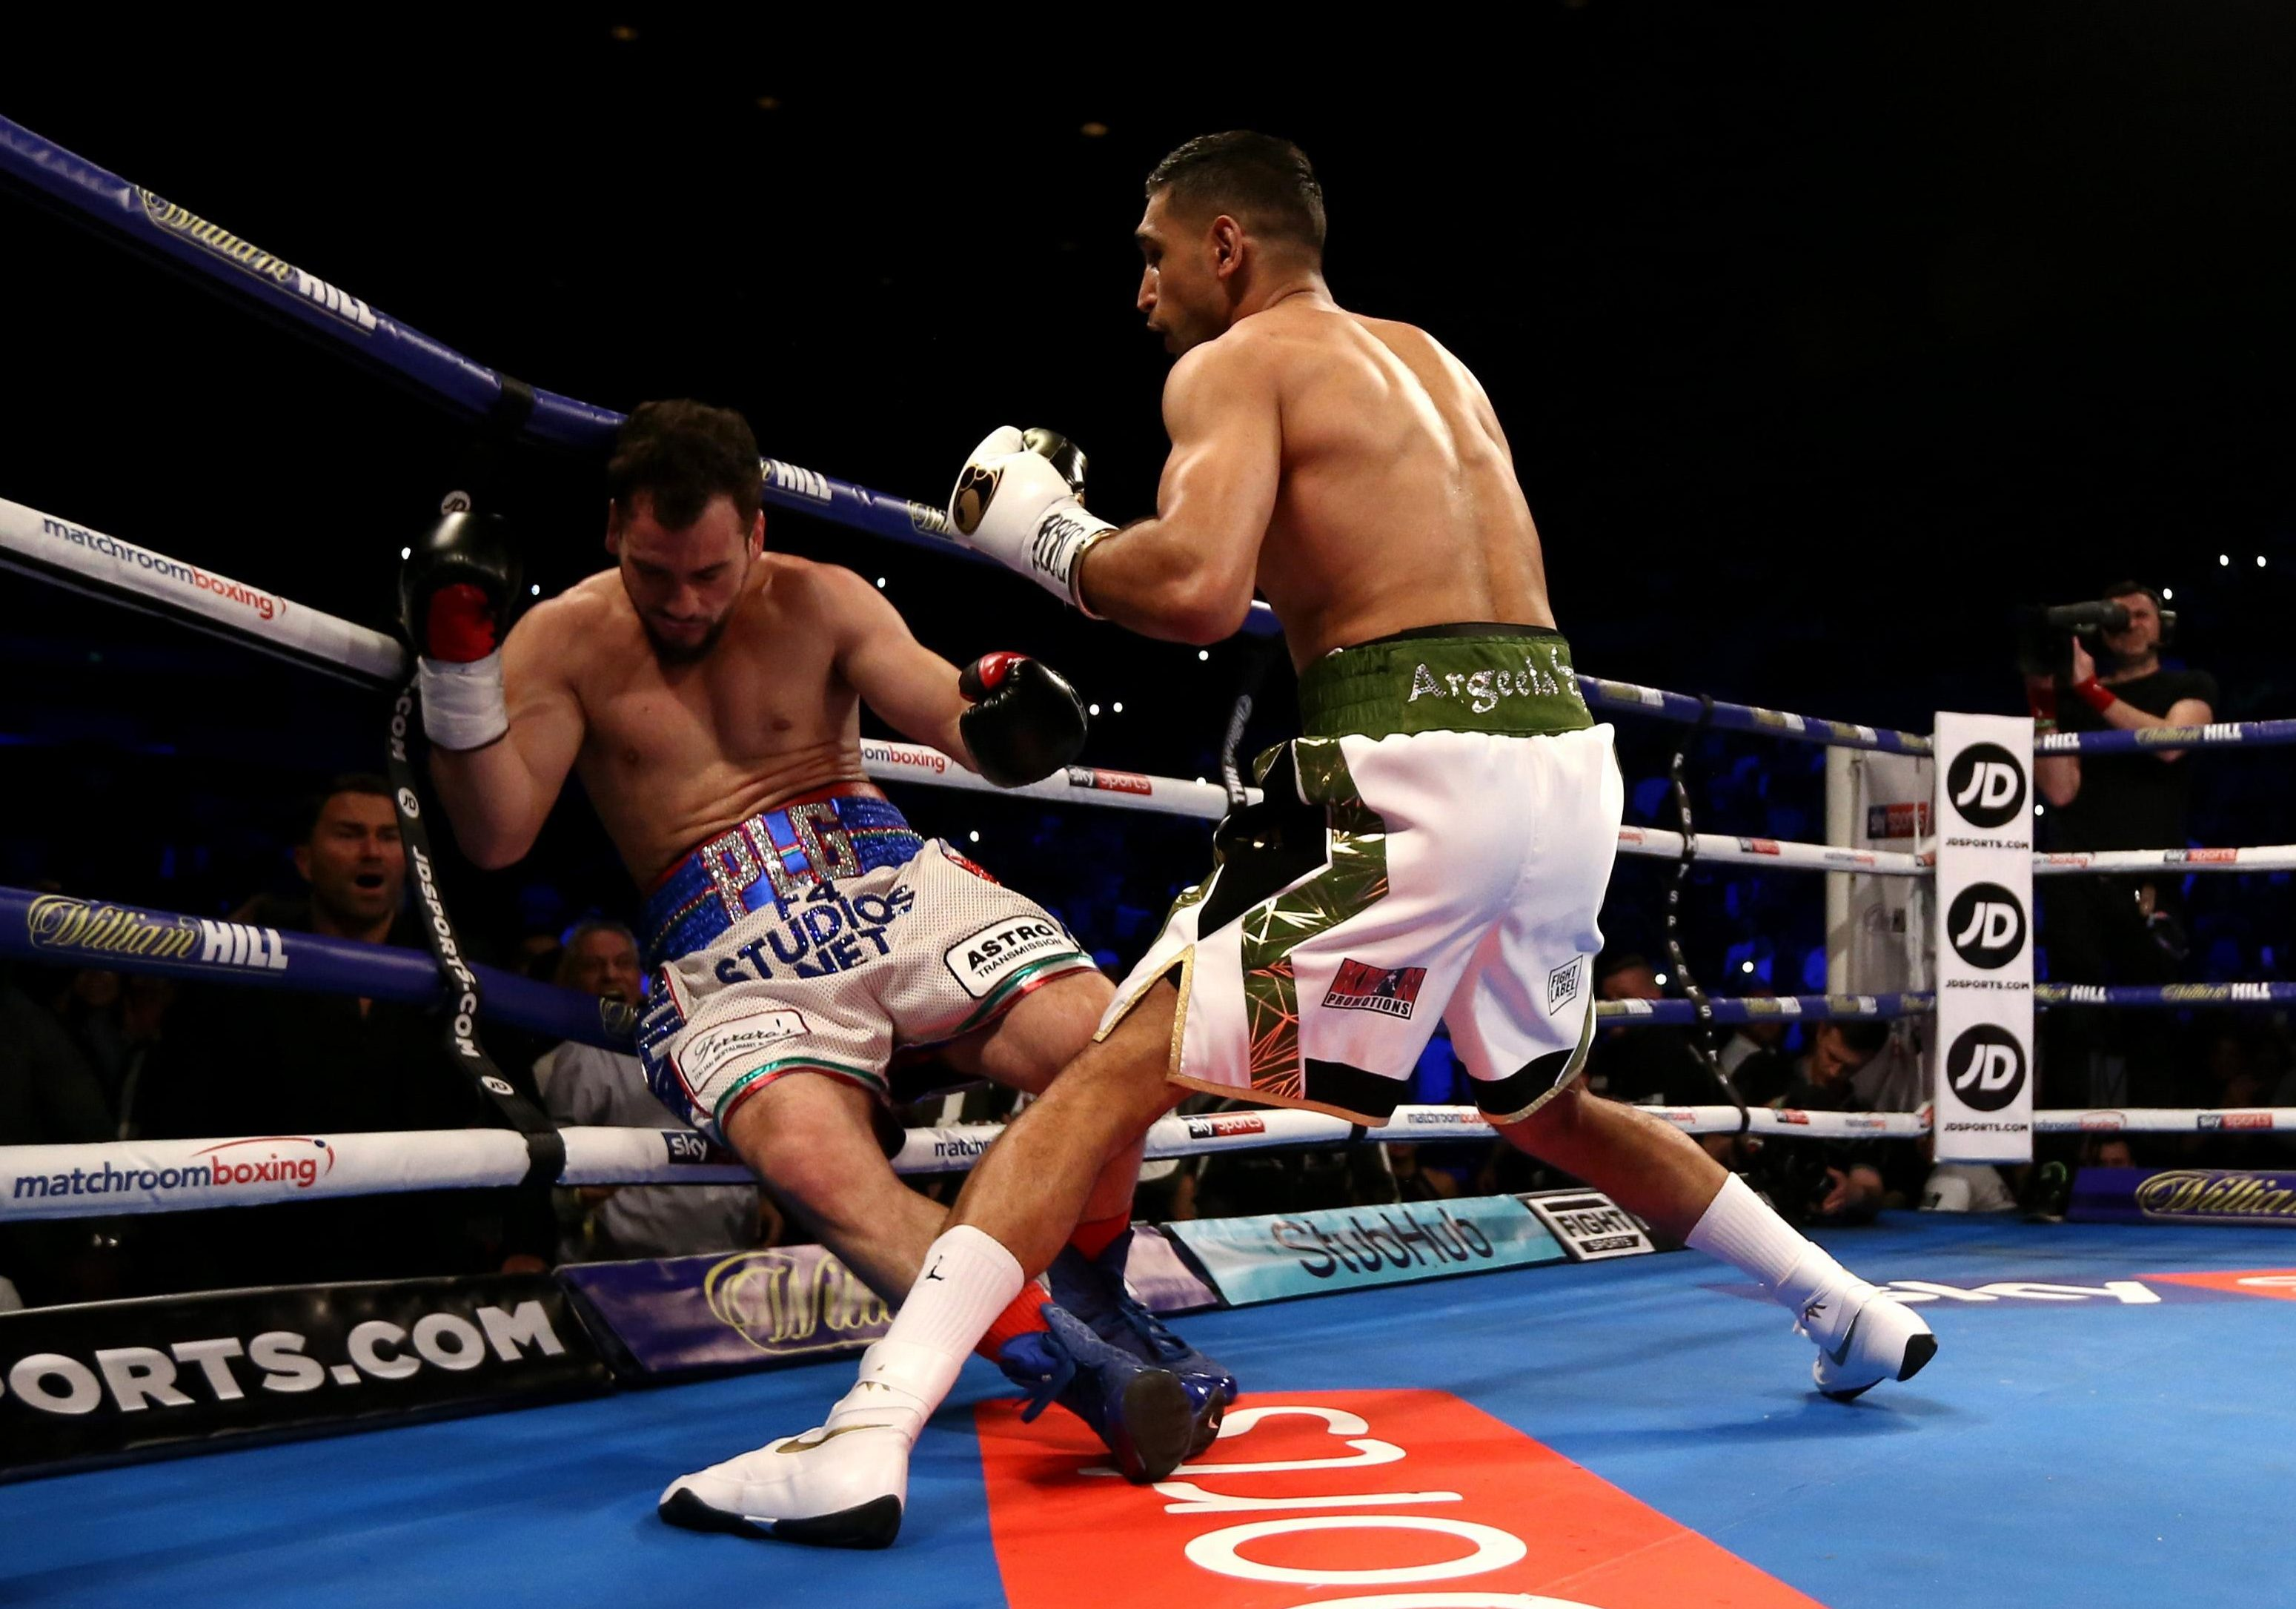 Amir Khan fought for the first time in two years in April - destroying Phil Lo Greco in 39 seconds